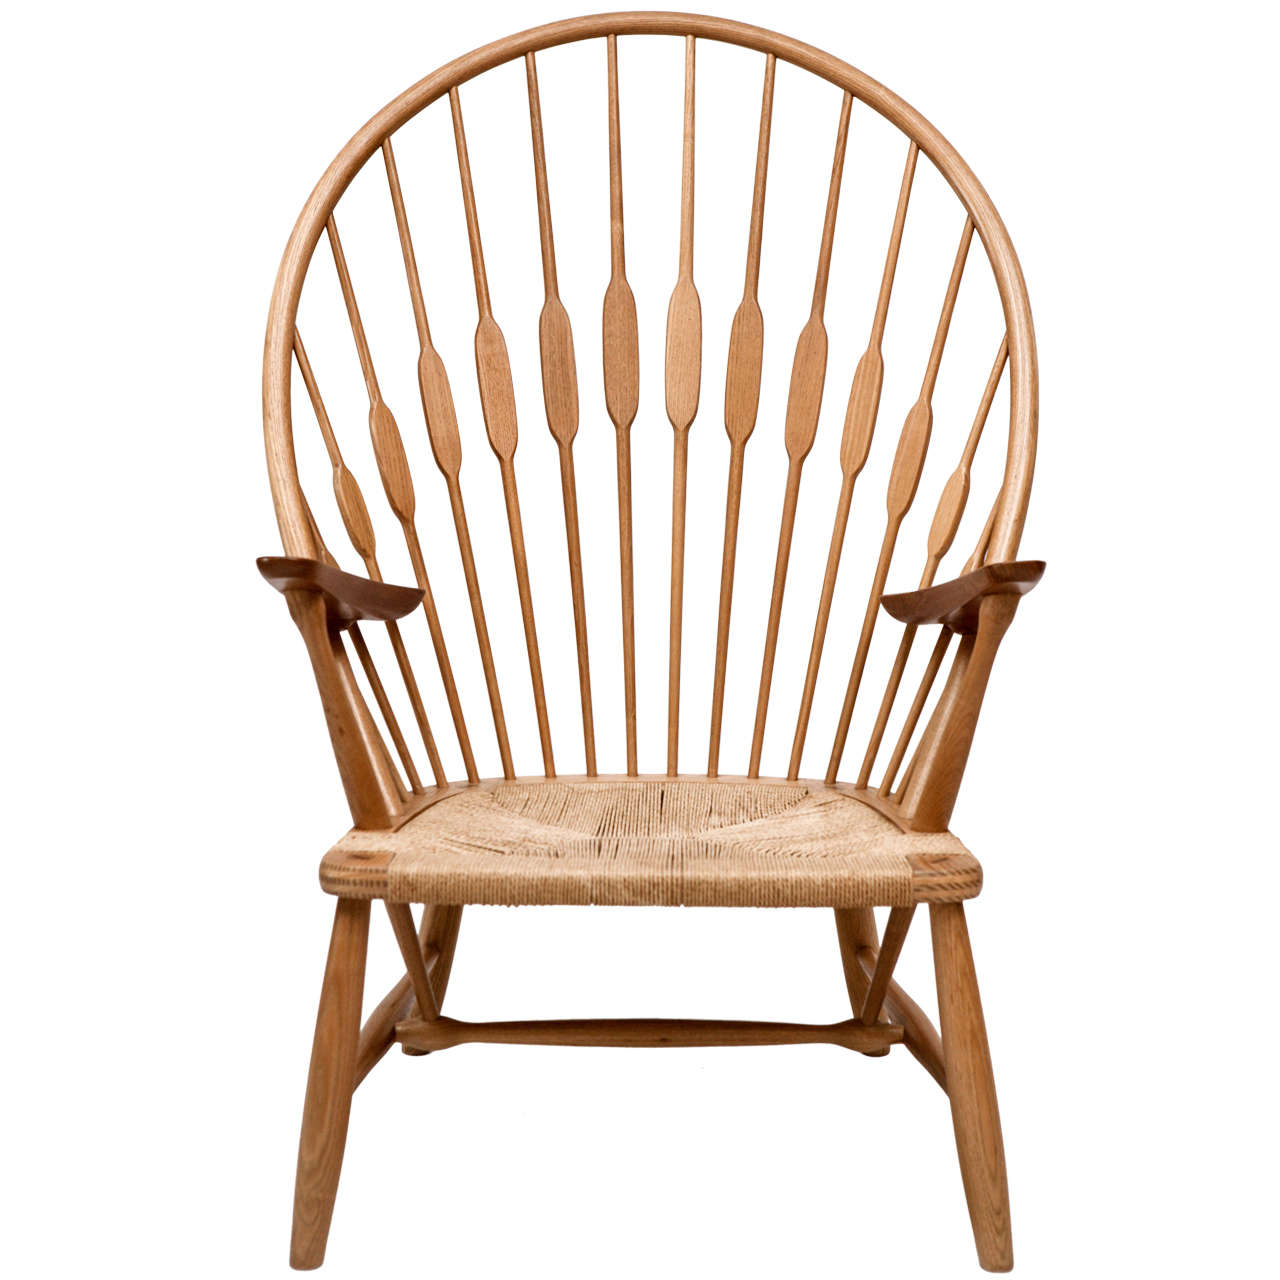 Good Hans Wegner Peacock Chair 1